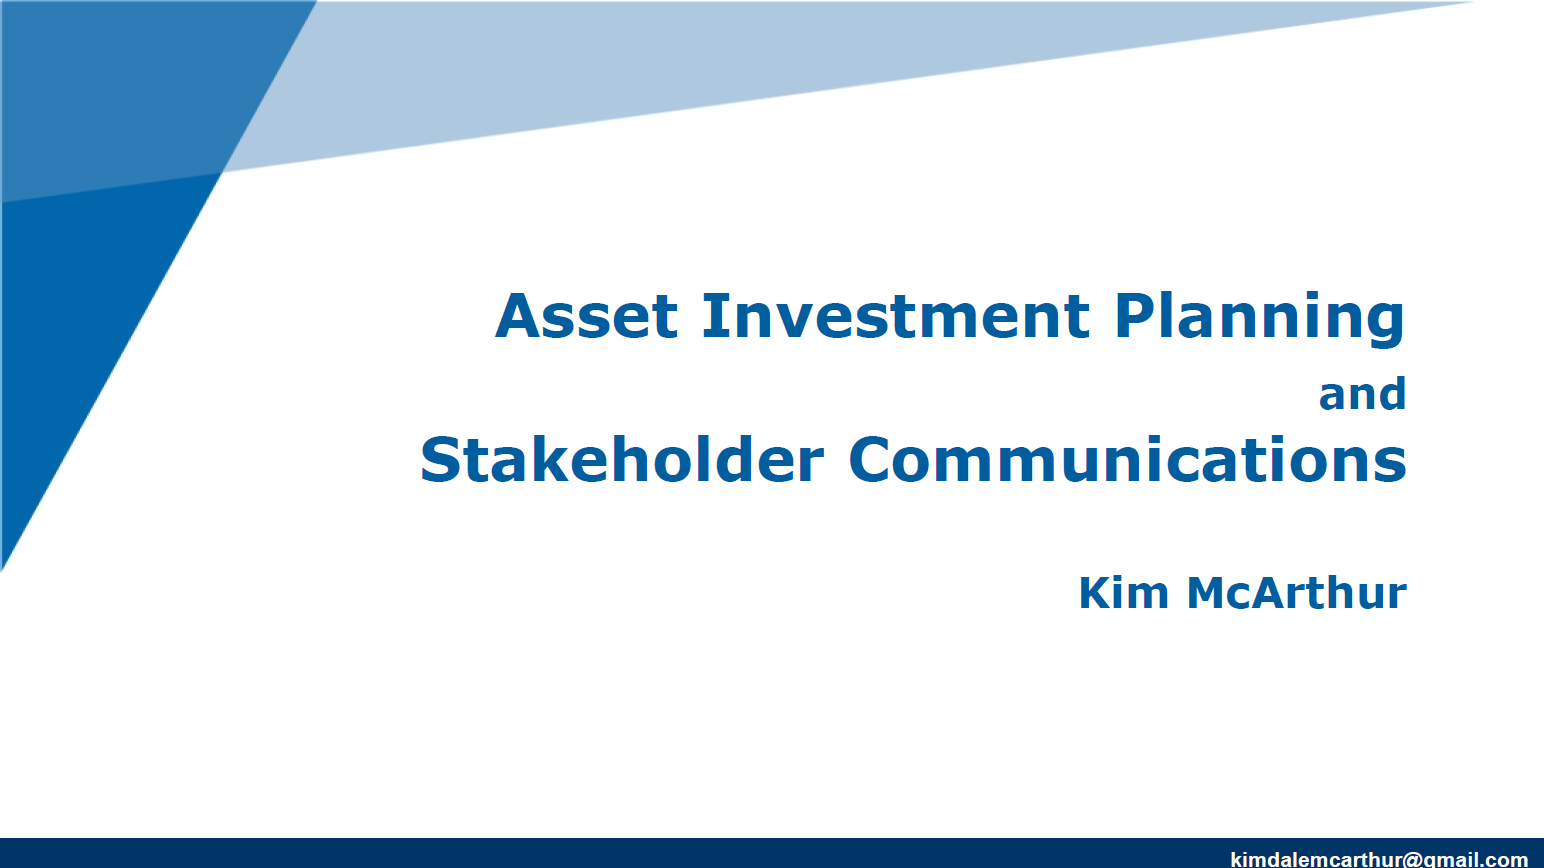 Asset Investment Planning and Stakeholder Communication